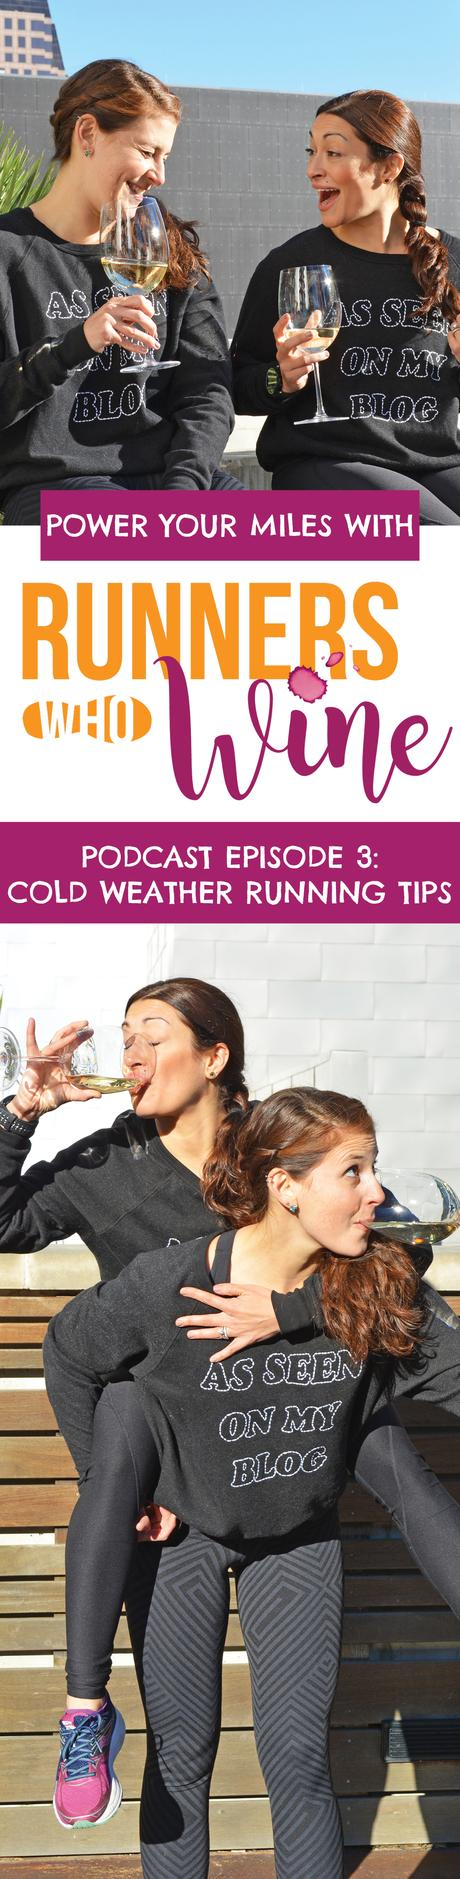 Runners Who Wine Episode 3: Cold Weather Running Tips